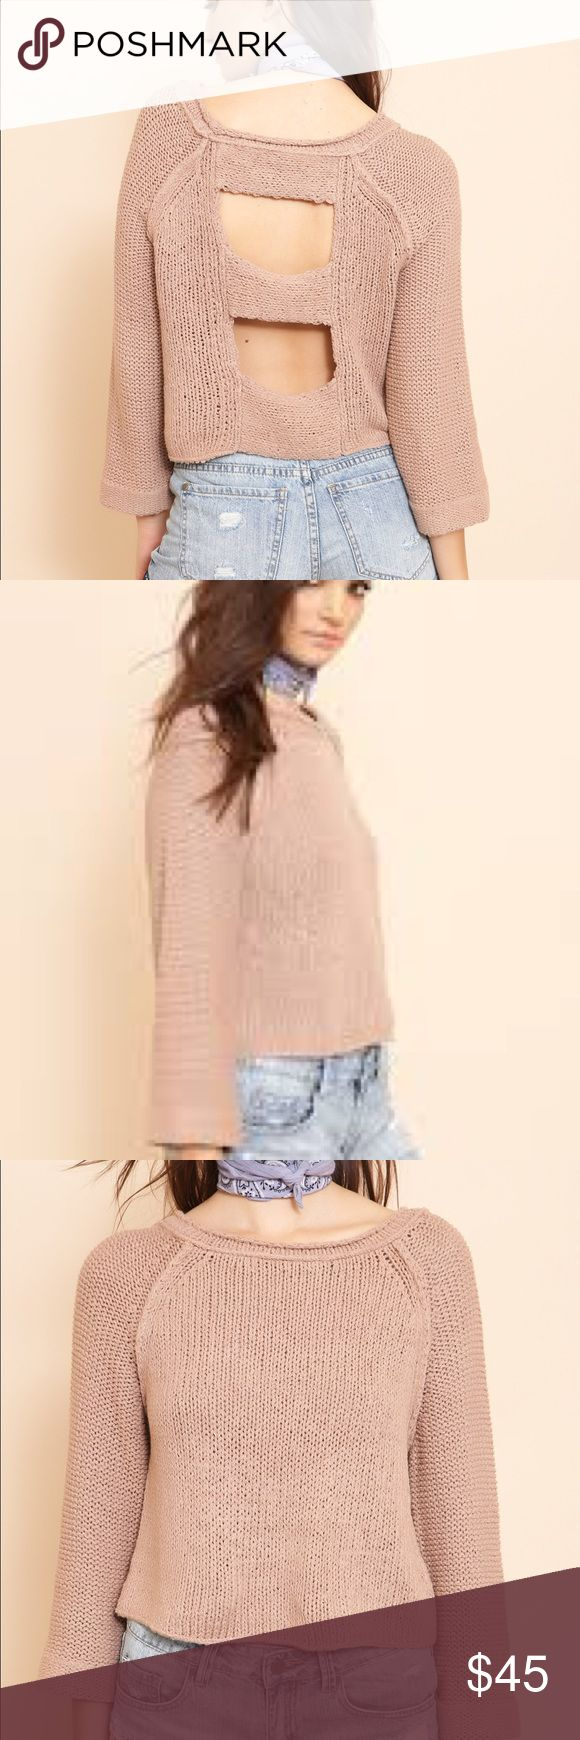 """NWT Endless Stories Pullover Boxy cropped knit sweater.Back cut outs. Unlined. Style #: OB494593 Material: Cotton/Nylon Color: """"Toasted Almond"""" (Nude) Model is wearing an x-small Free People Sweaters Crew & Scoop Necks"""